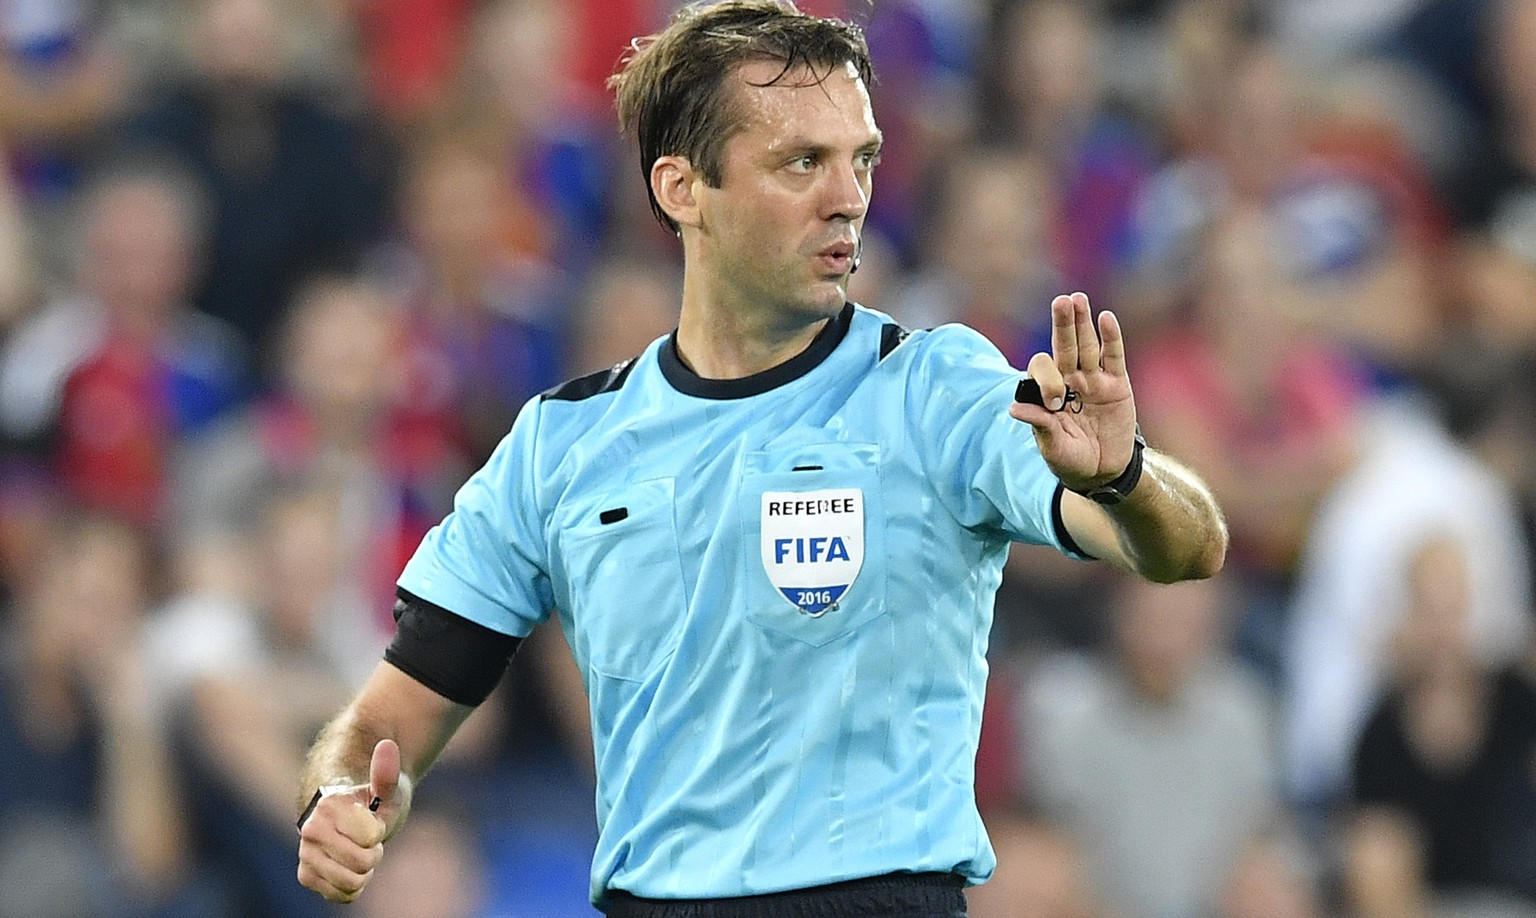 Referee Aleksei Kulbakov of Belarus reacts during an UEFA Champions League Group stage Group A matchday 1 soccer match between Switzerland's FC Basel 1893 and Bulgaria's PFC Ludogorets Razgrad in the St. Jakob-Park stadium in Basel, Switzerland, on Tuesday, September 13, 2016. (KEYSTONE/Peter Schneider)